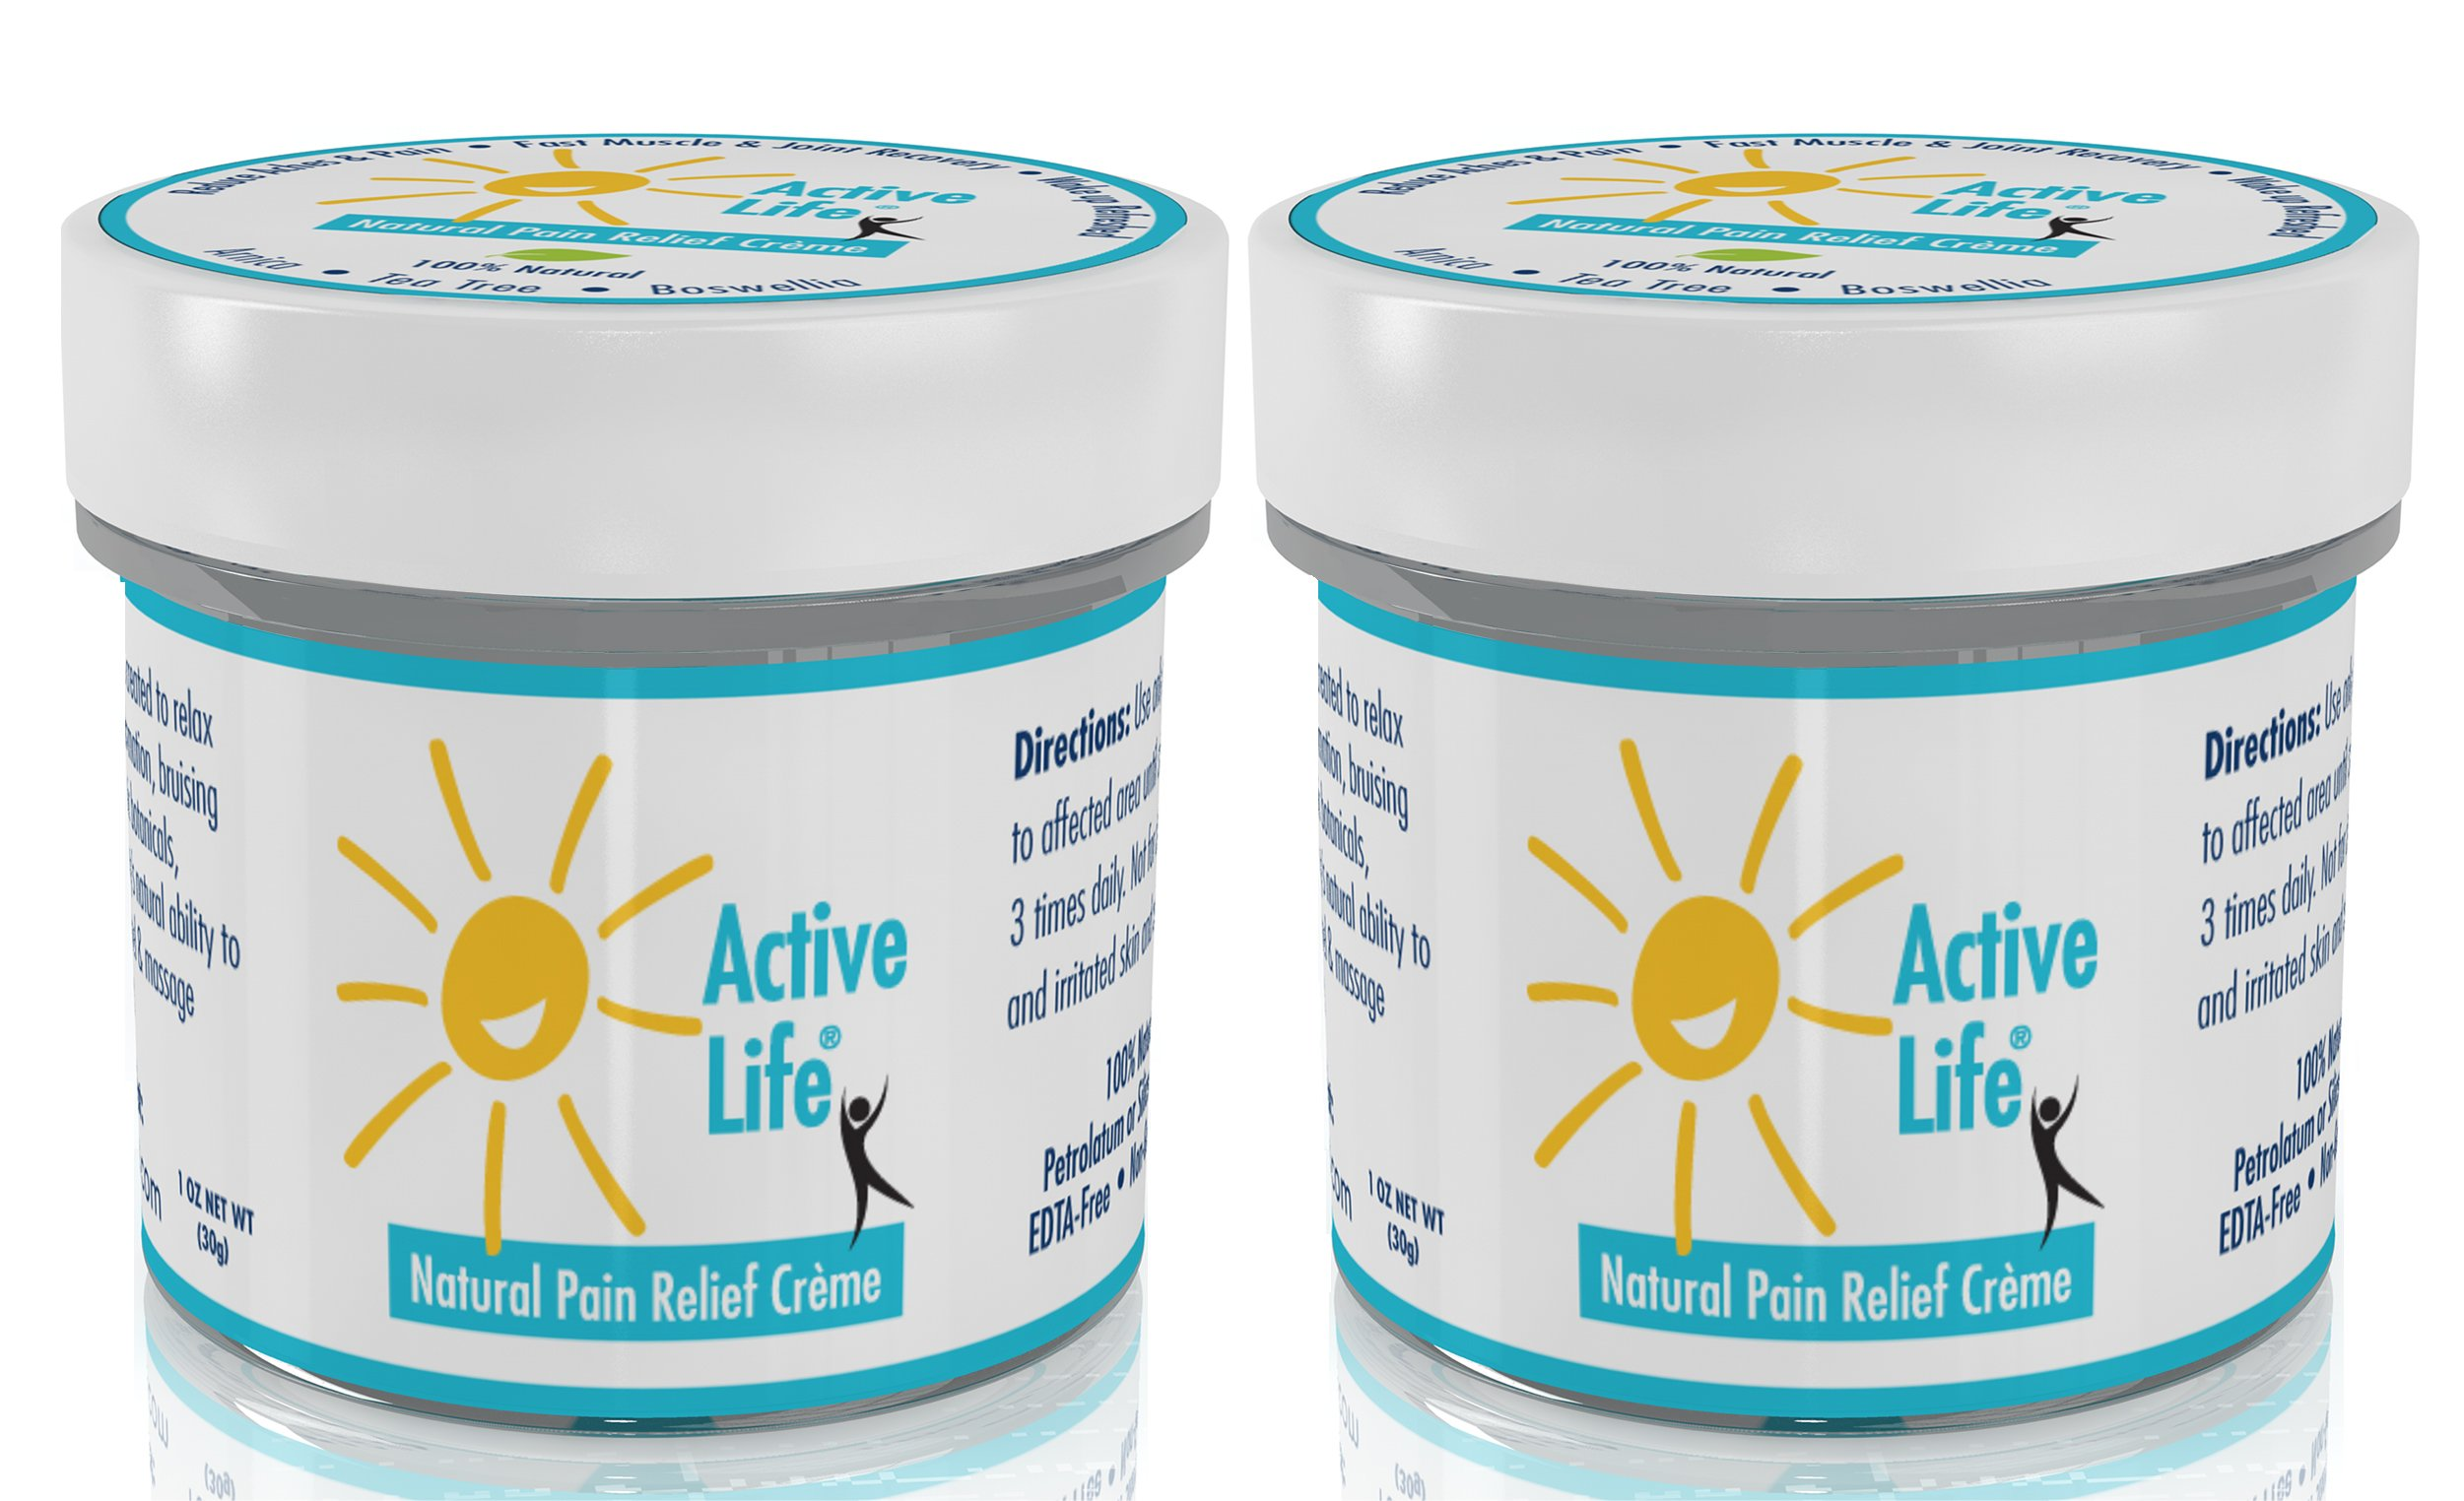 Active Life Natural Pain Relief Cream. 1 oz Travel Size (2 Pack). All Natural Relief for Joint Pain, Muscle Soreness and Skin Irritations. Perfect Stocking Stuffers or Small Gifts for the Holidays.